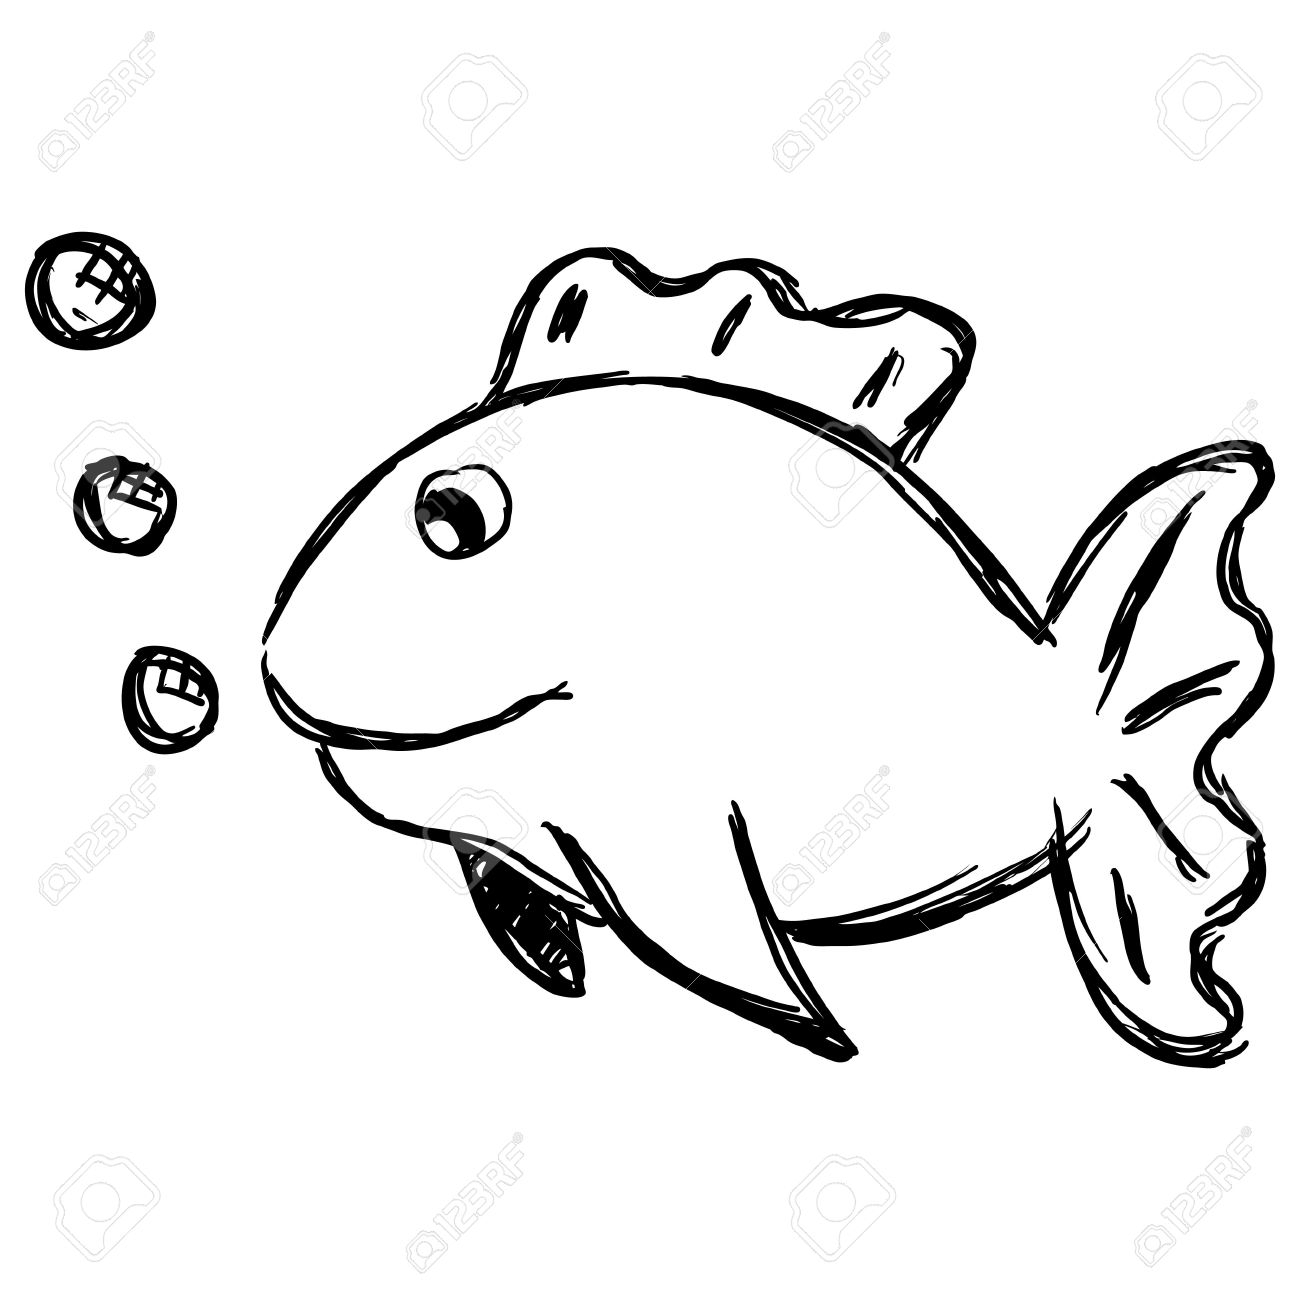 1300x1300 Cartoon Fish Drawing Outline Drawings Of Fish Group